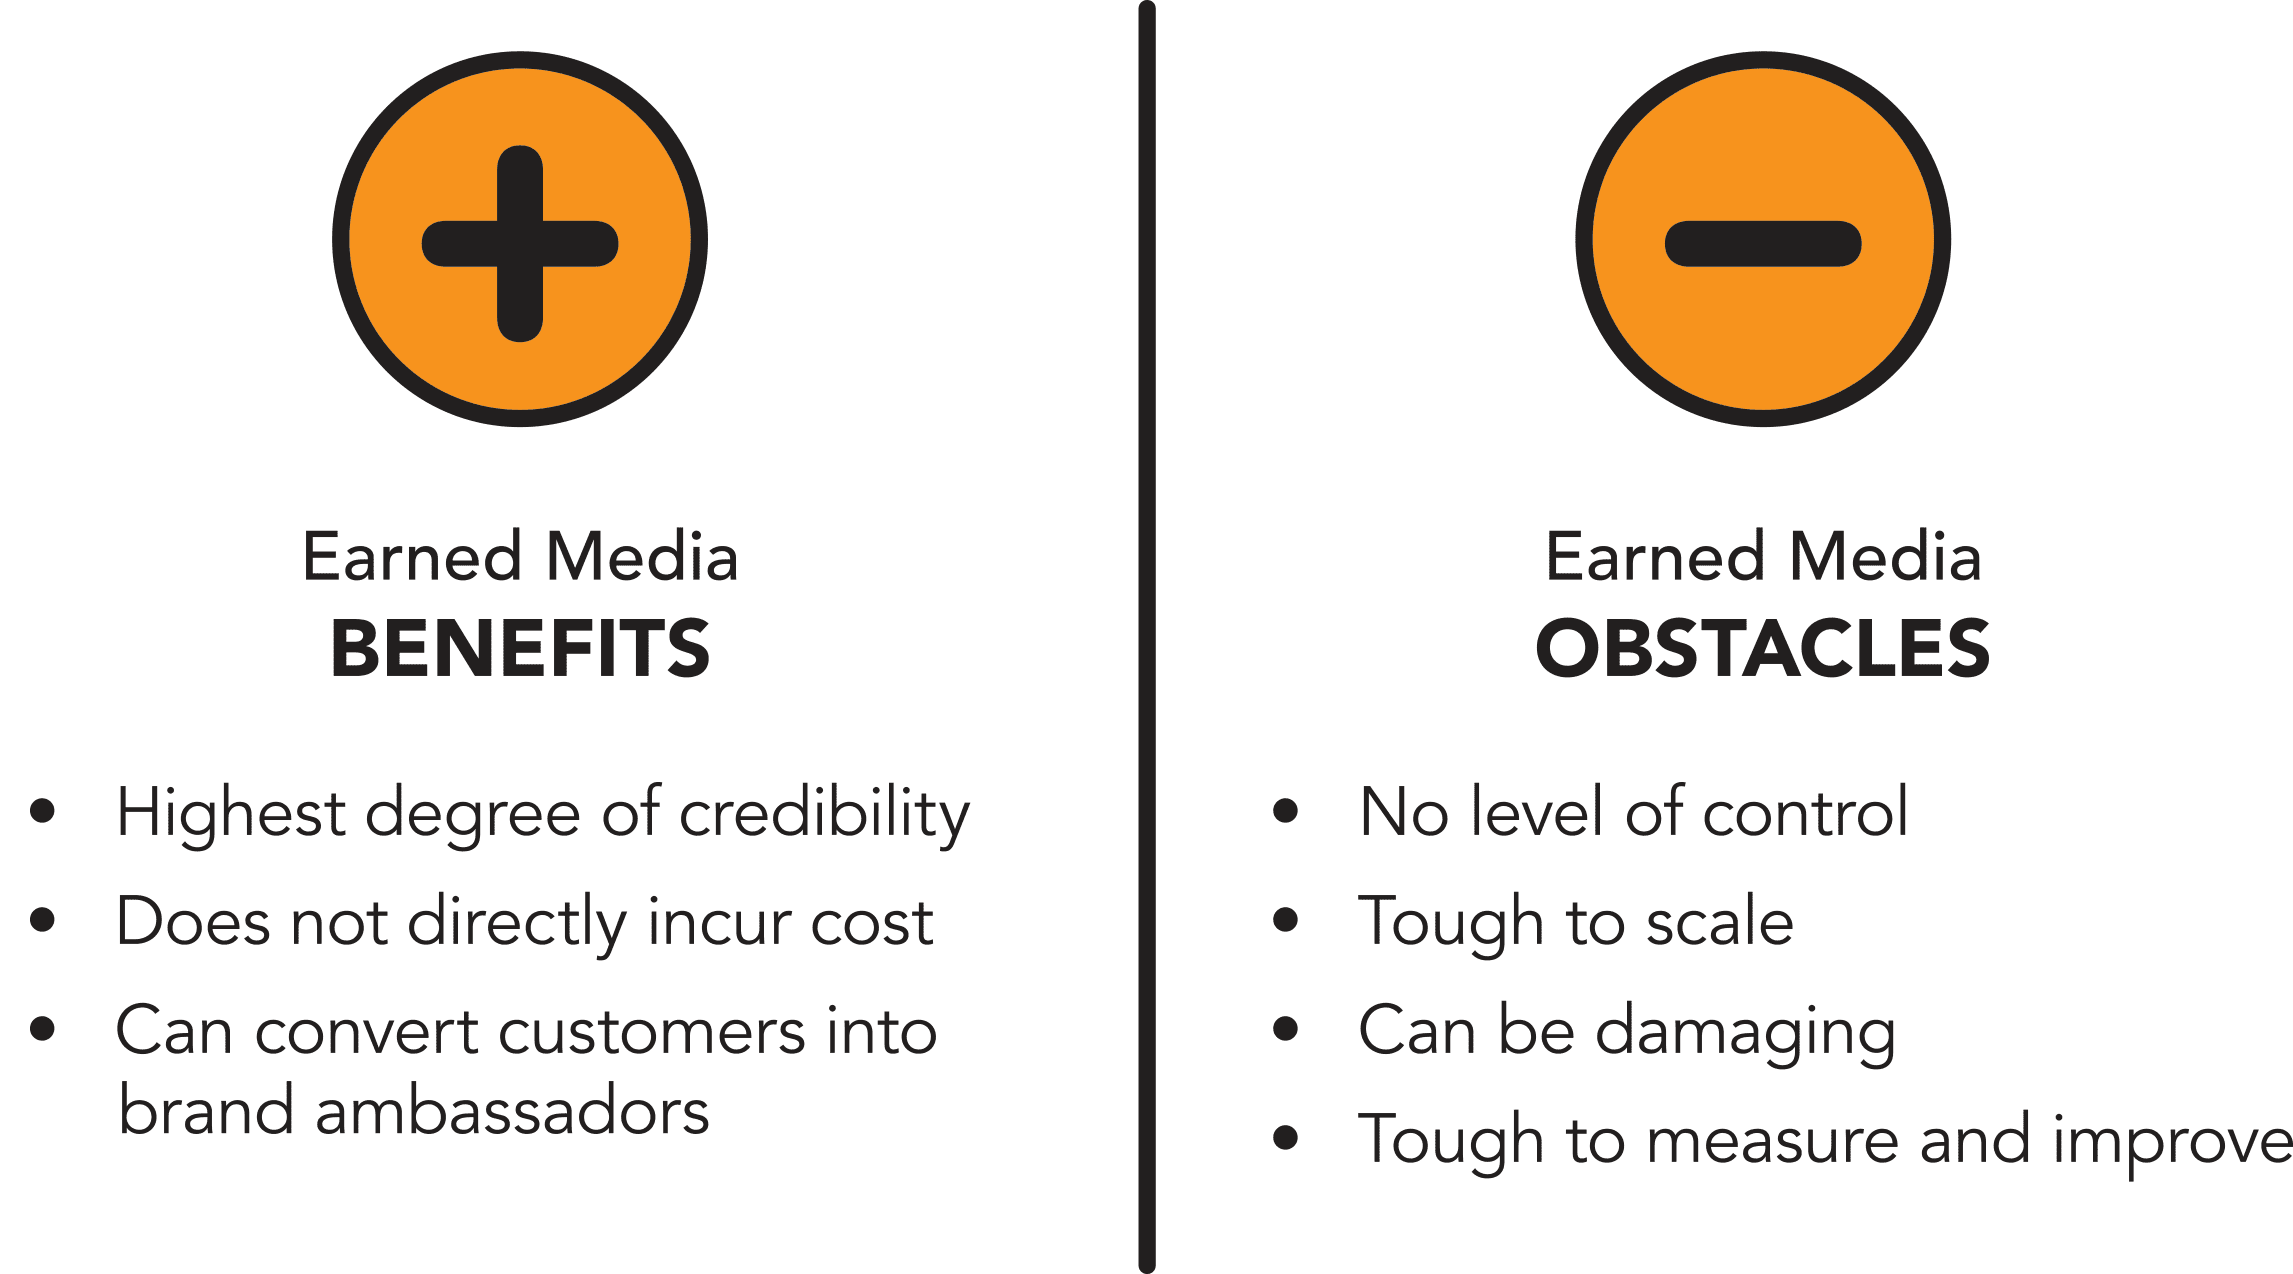 The pros and cons of earned media.